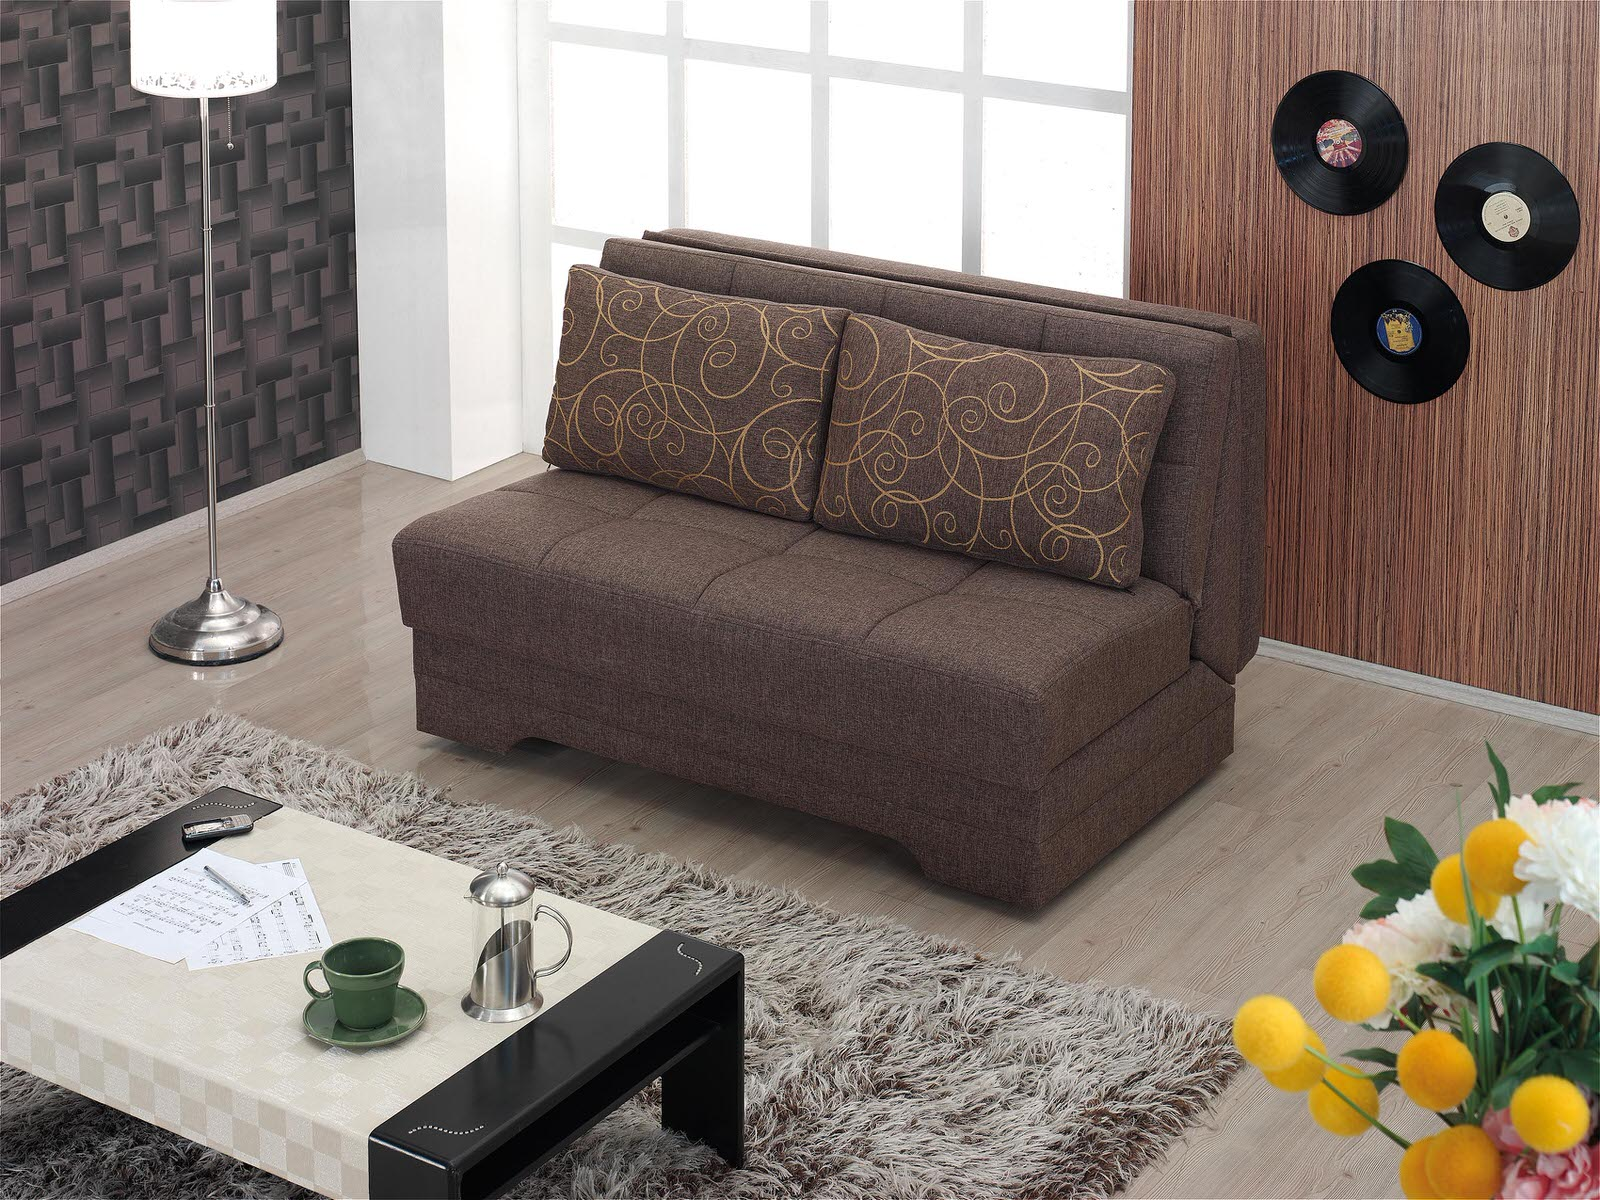 El paso twist brown loveseat sleeper by empire furniture usa Sofa mart el paso tx